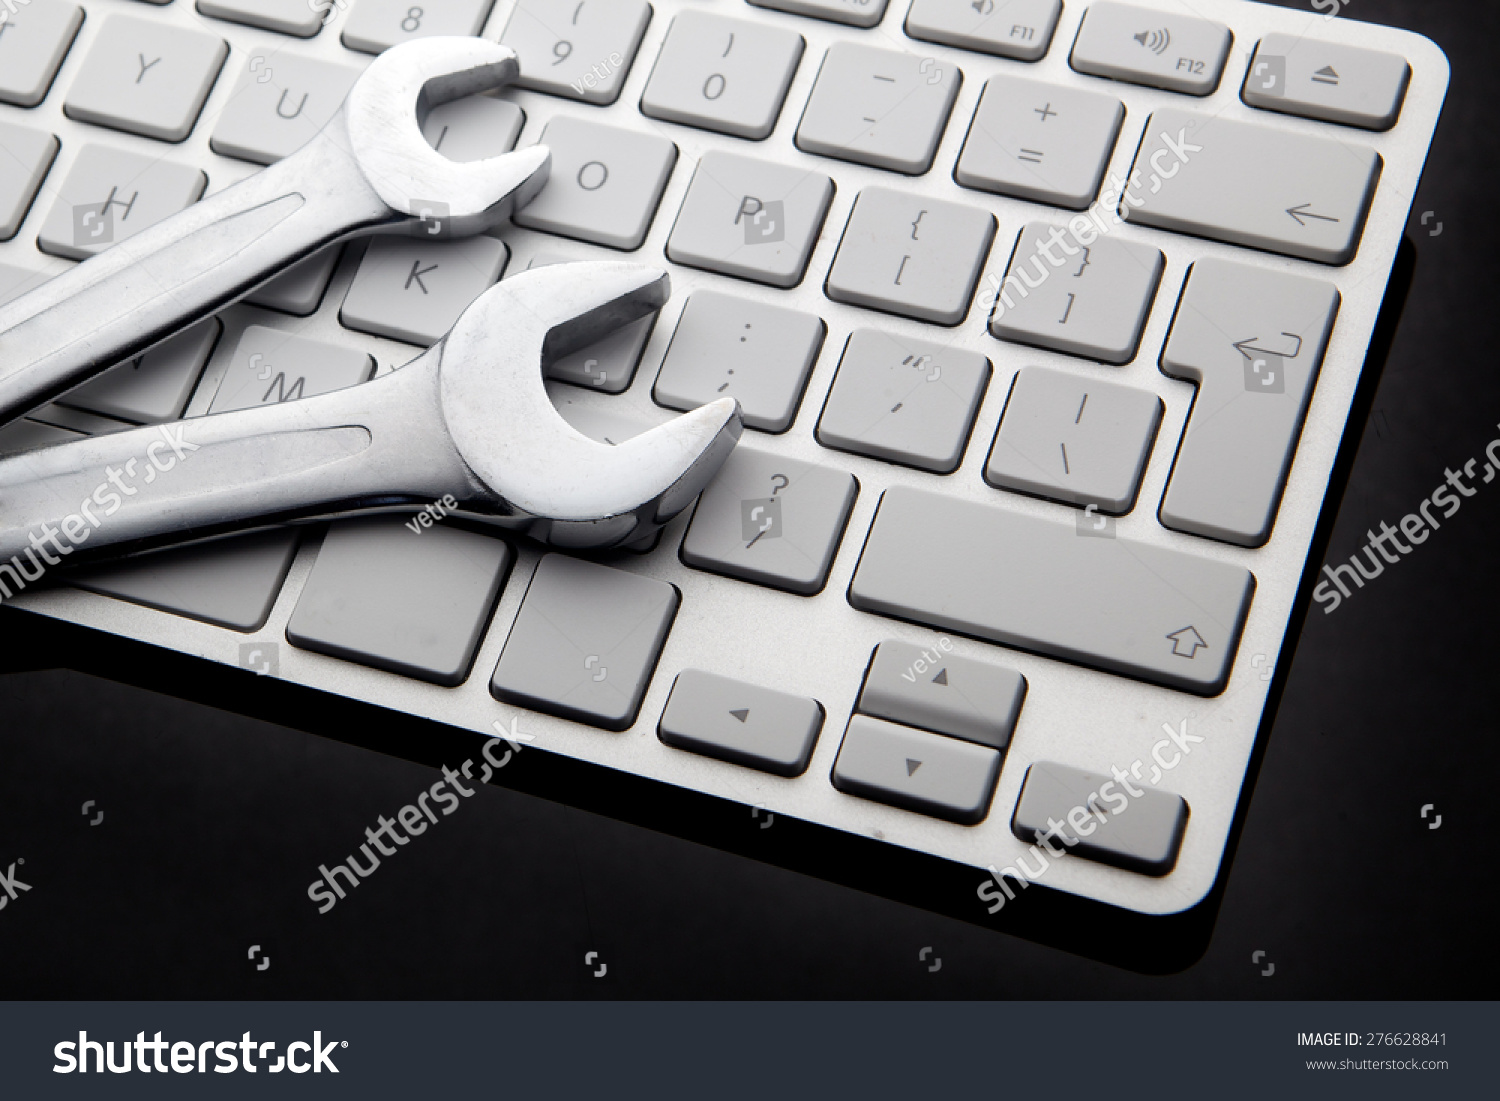 electronic technical support concept - spanners on computer keyboard #276628841